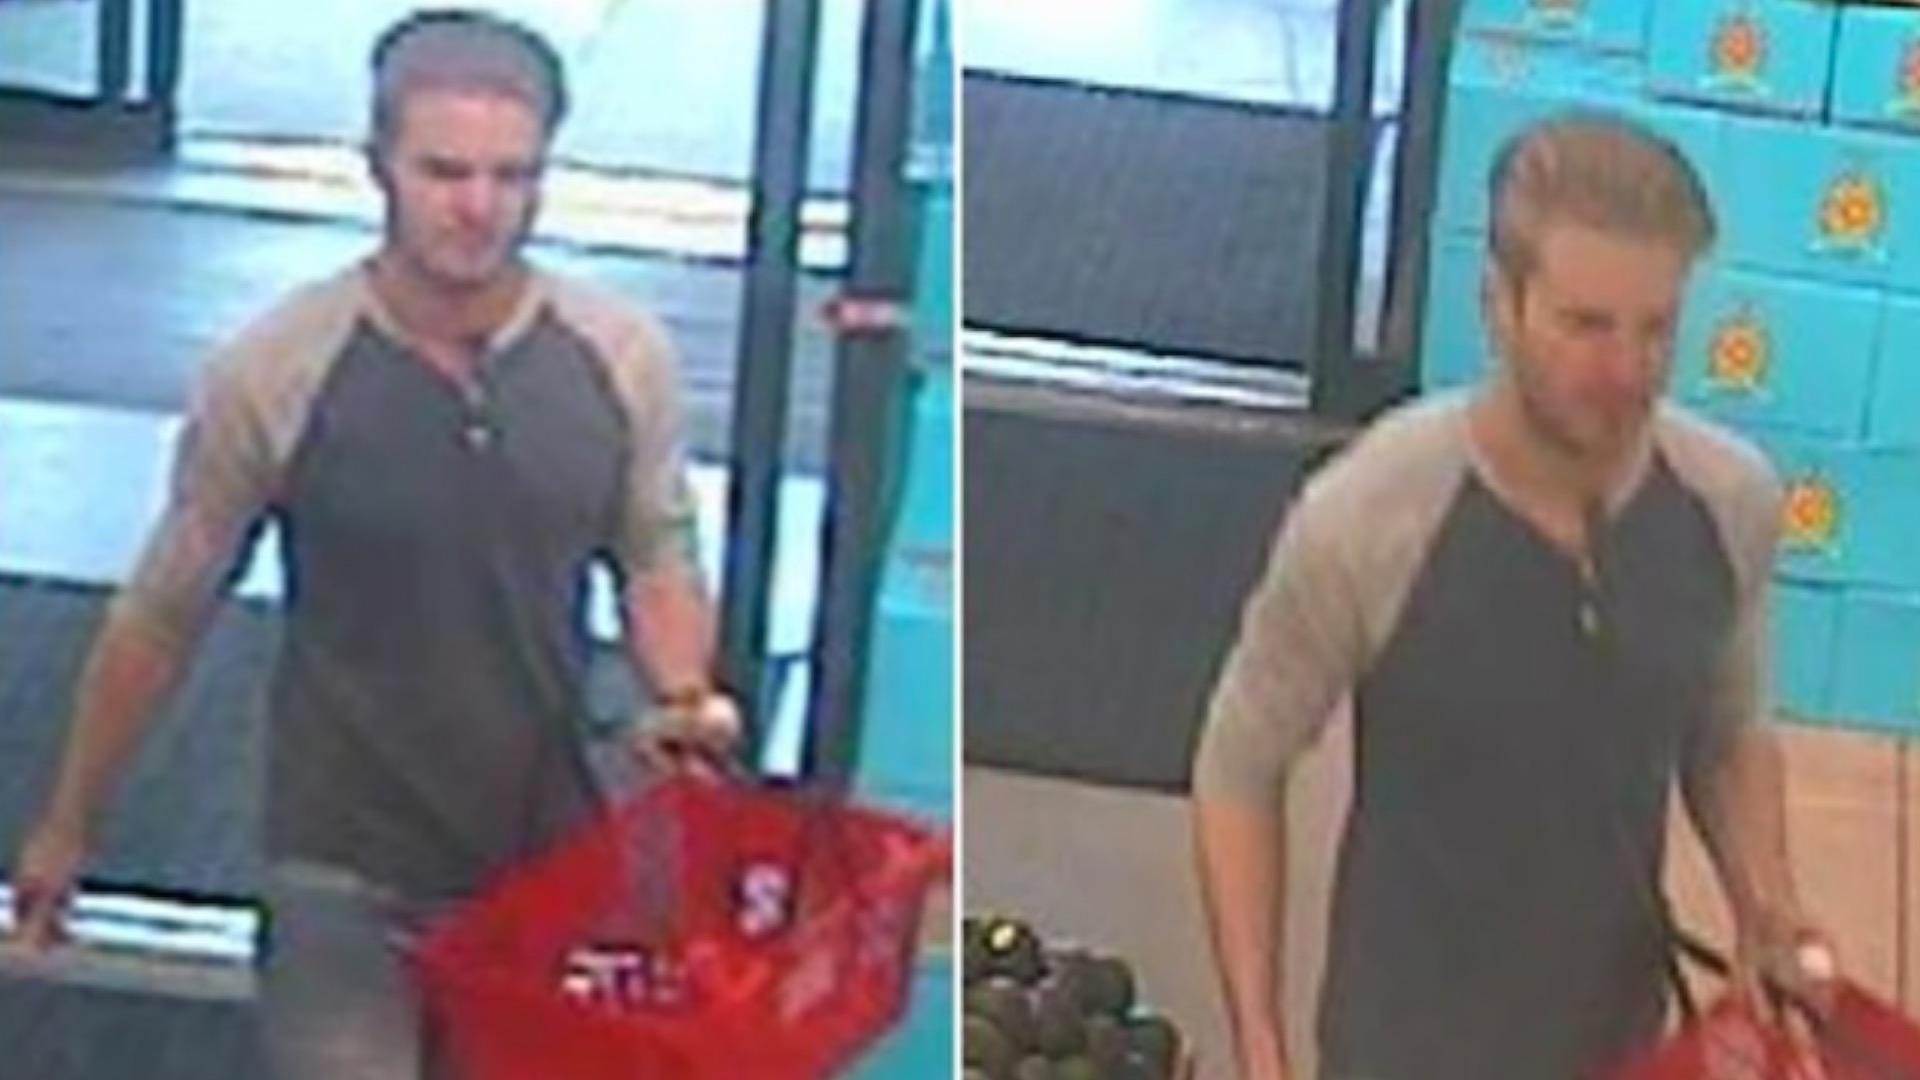 FBI Seeks Man Who Sprinkled Mysterious Liquid On Self-Serve Stations At Whole Foods